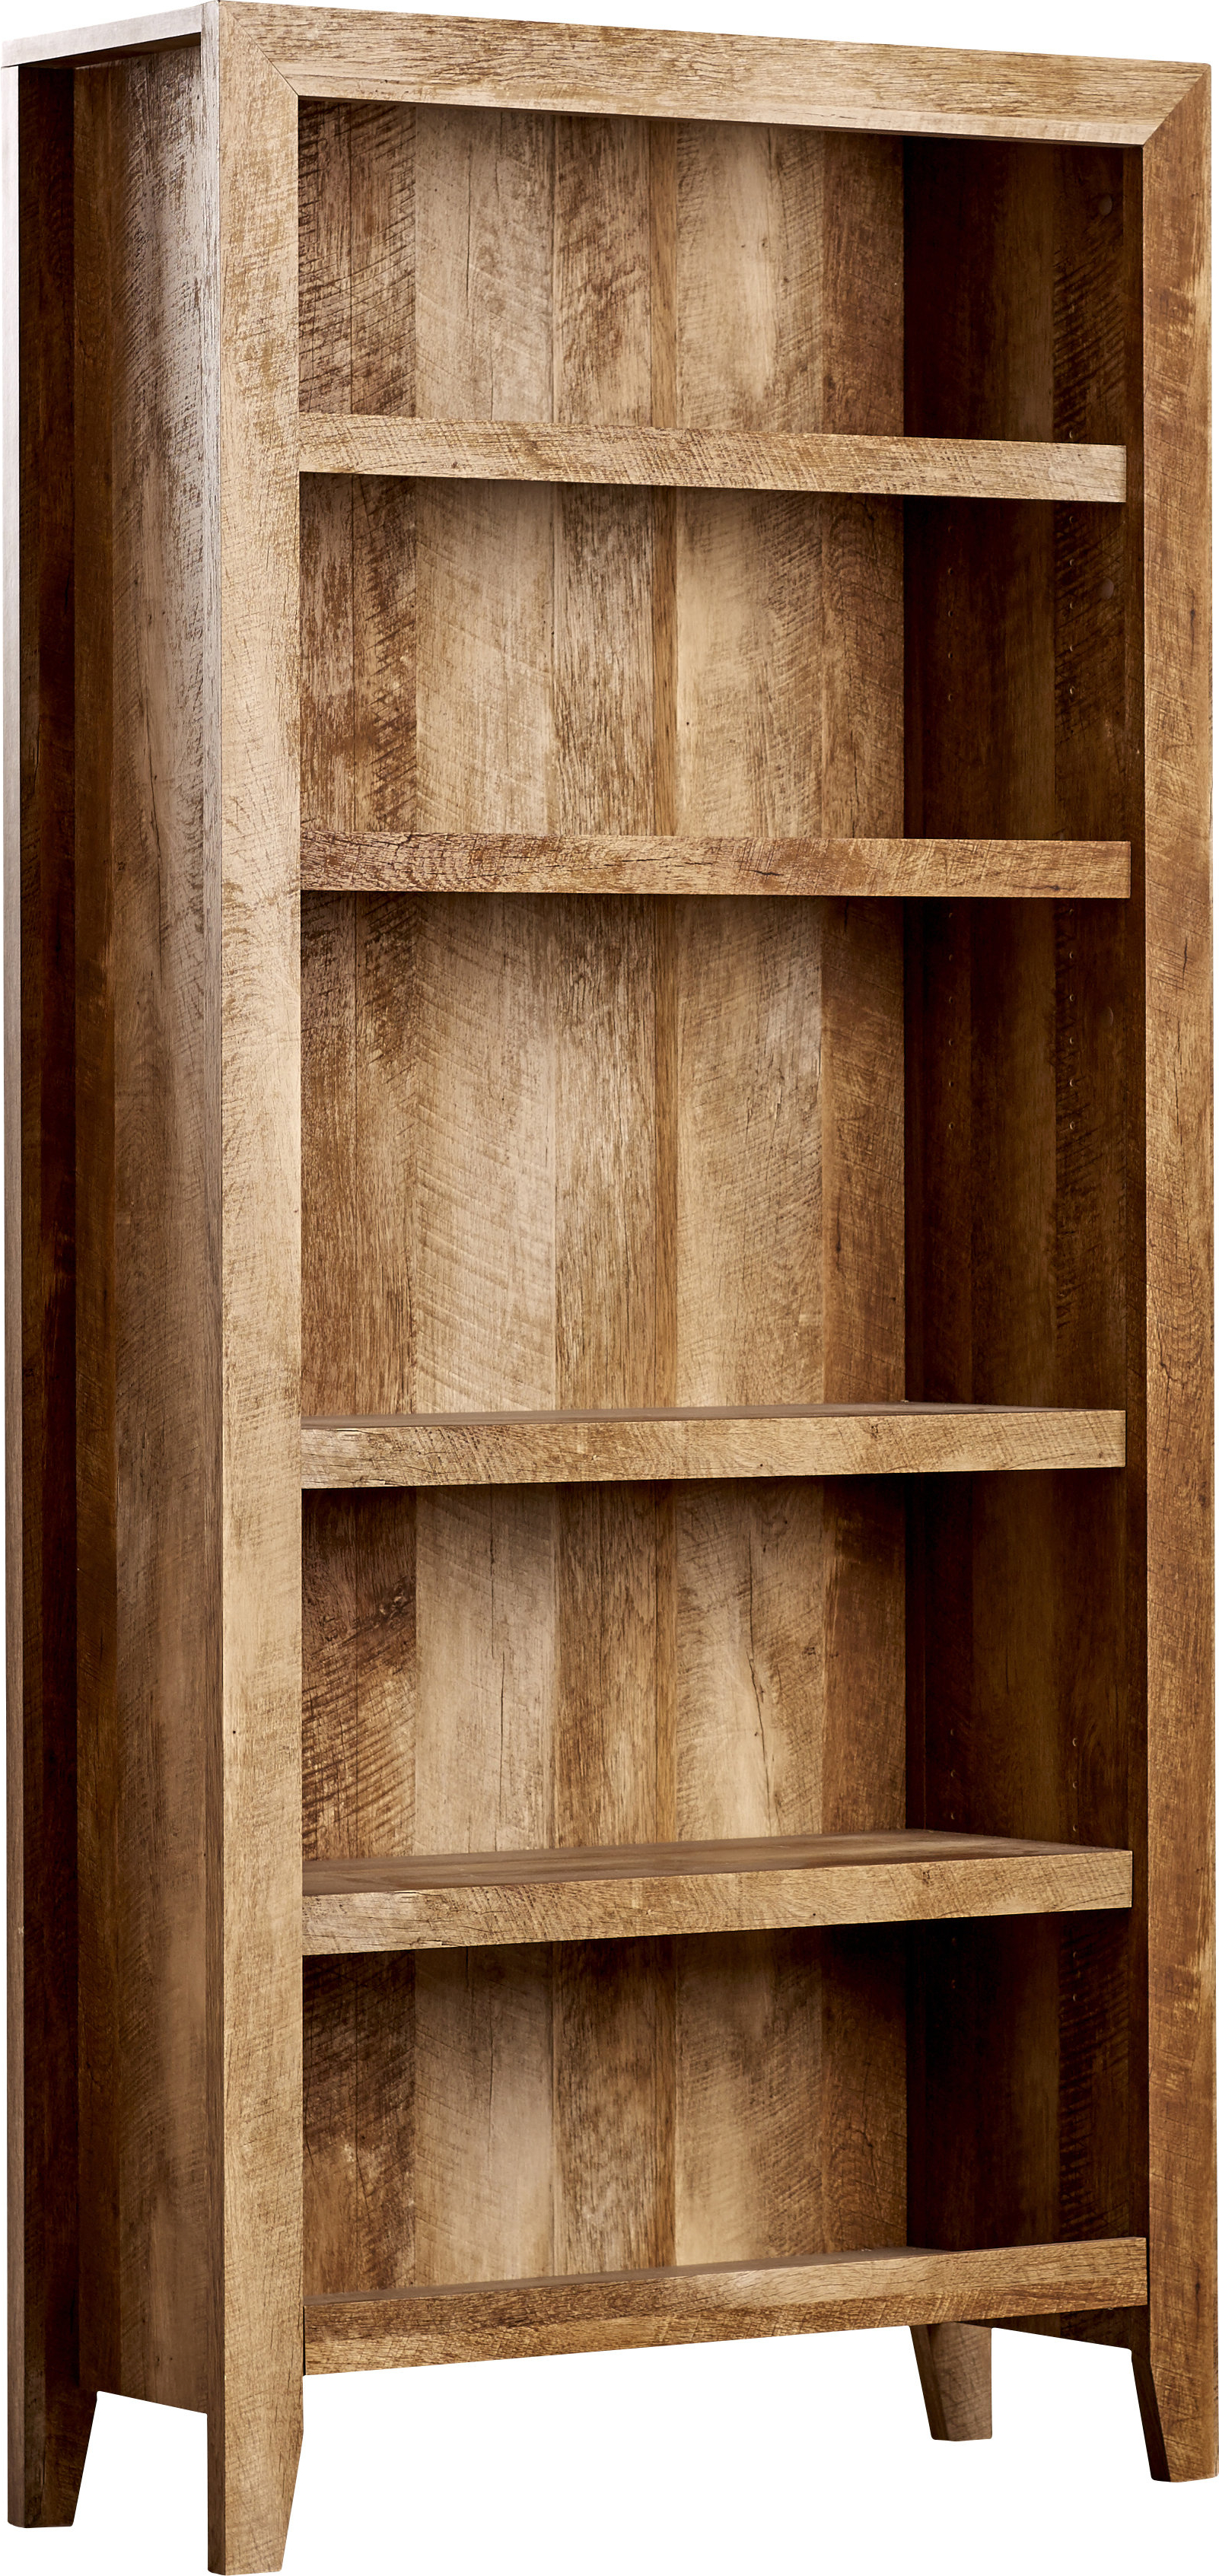 Recent Orford Standard Bookcases With Regard To Orford Standard Bookcase (View 3 of 20)